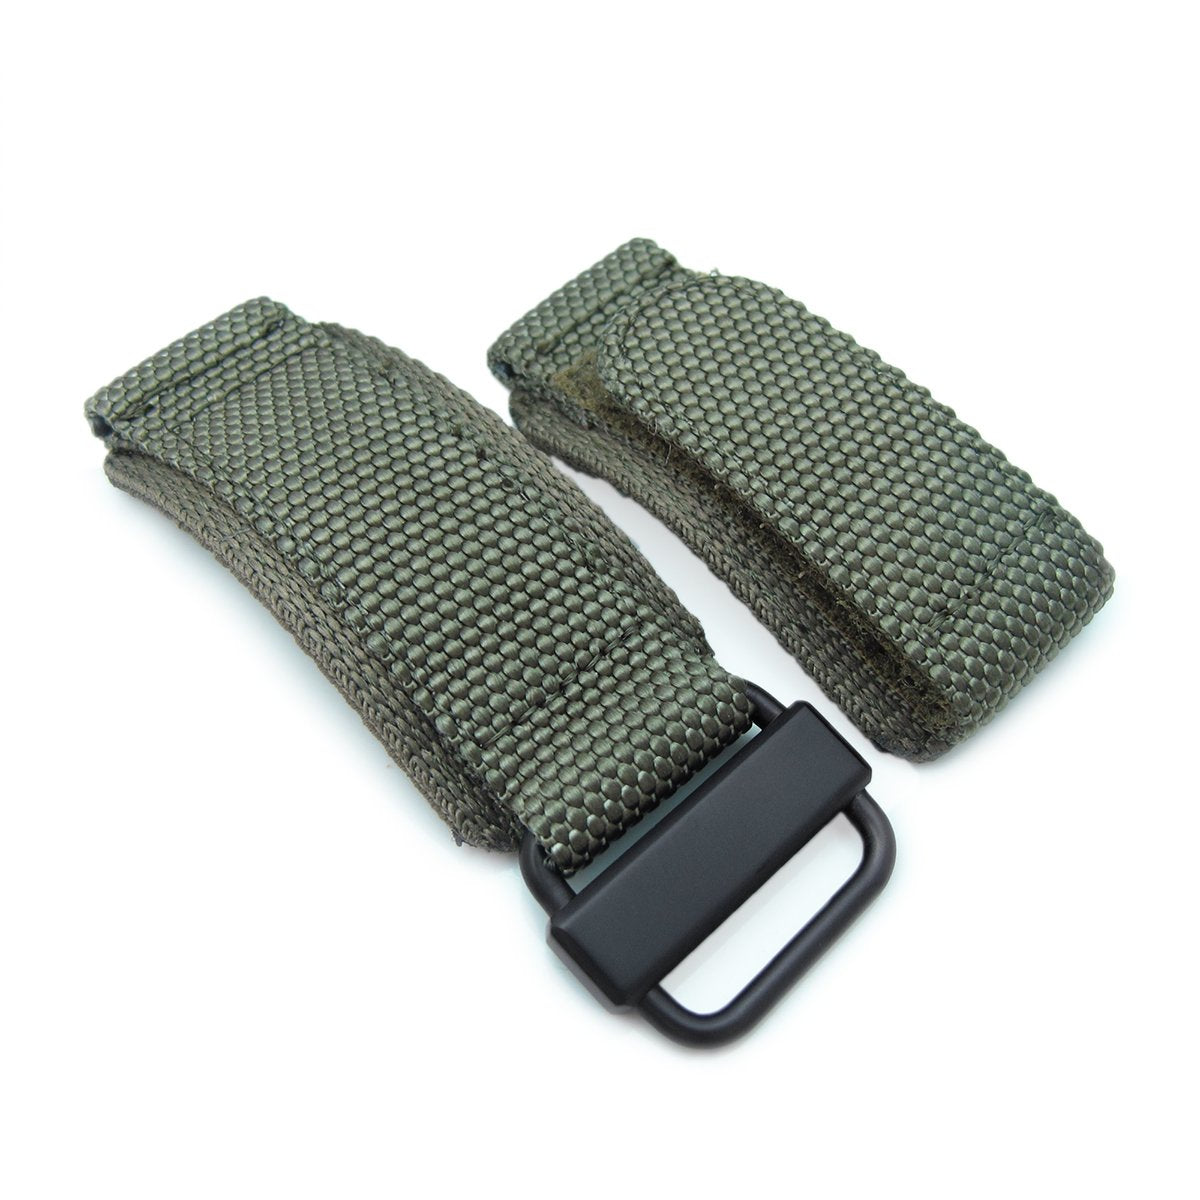 22mm MiLTAT Honeycomb Military Green Nylon Velcro Fastener Watch Strap PVD Black Stainless Buckle Strapcode Watch Bands